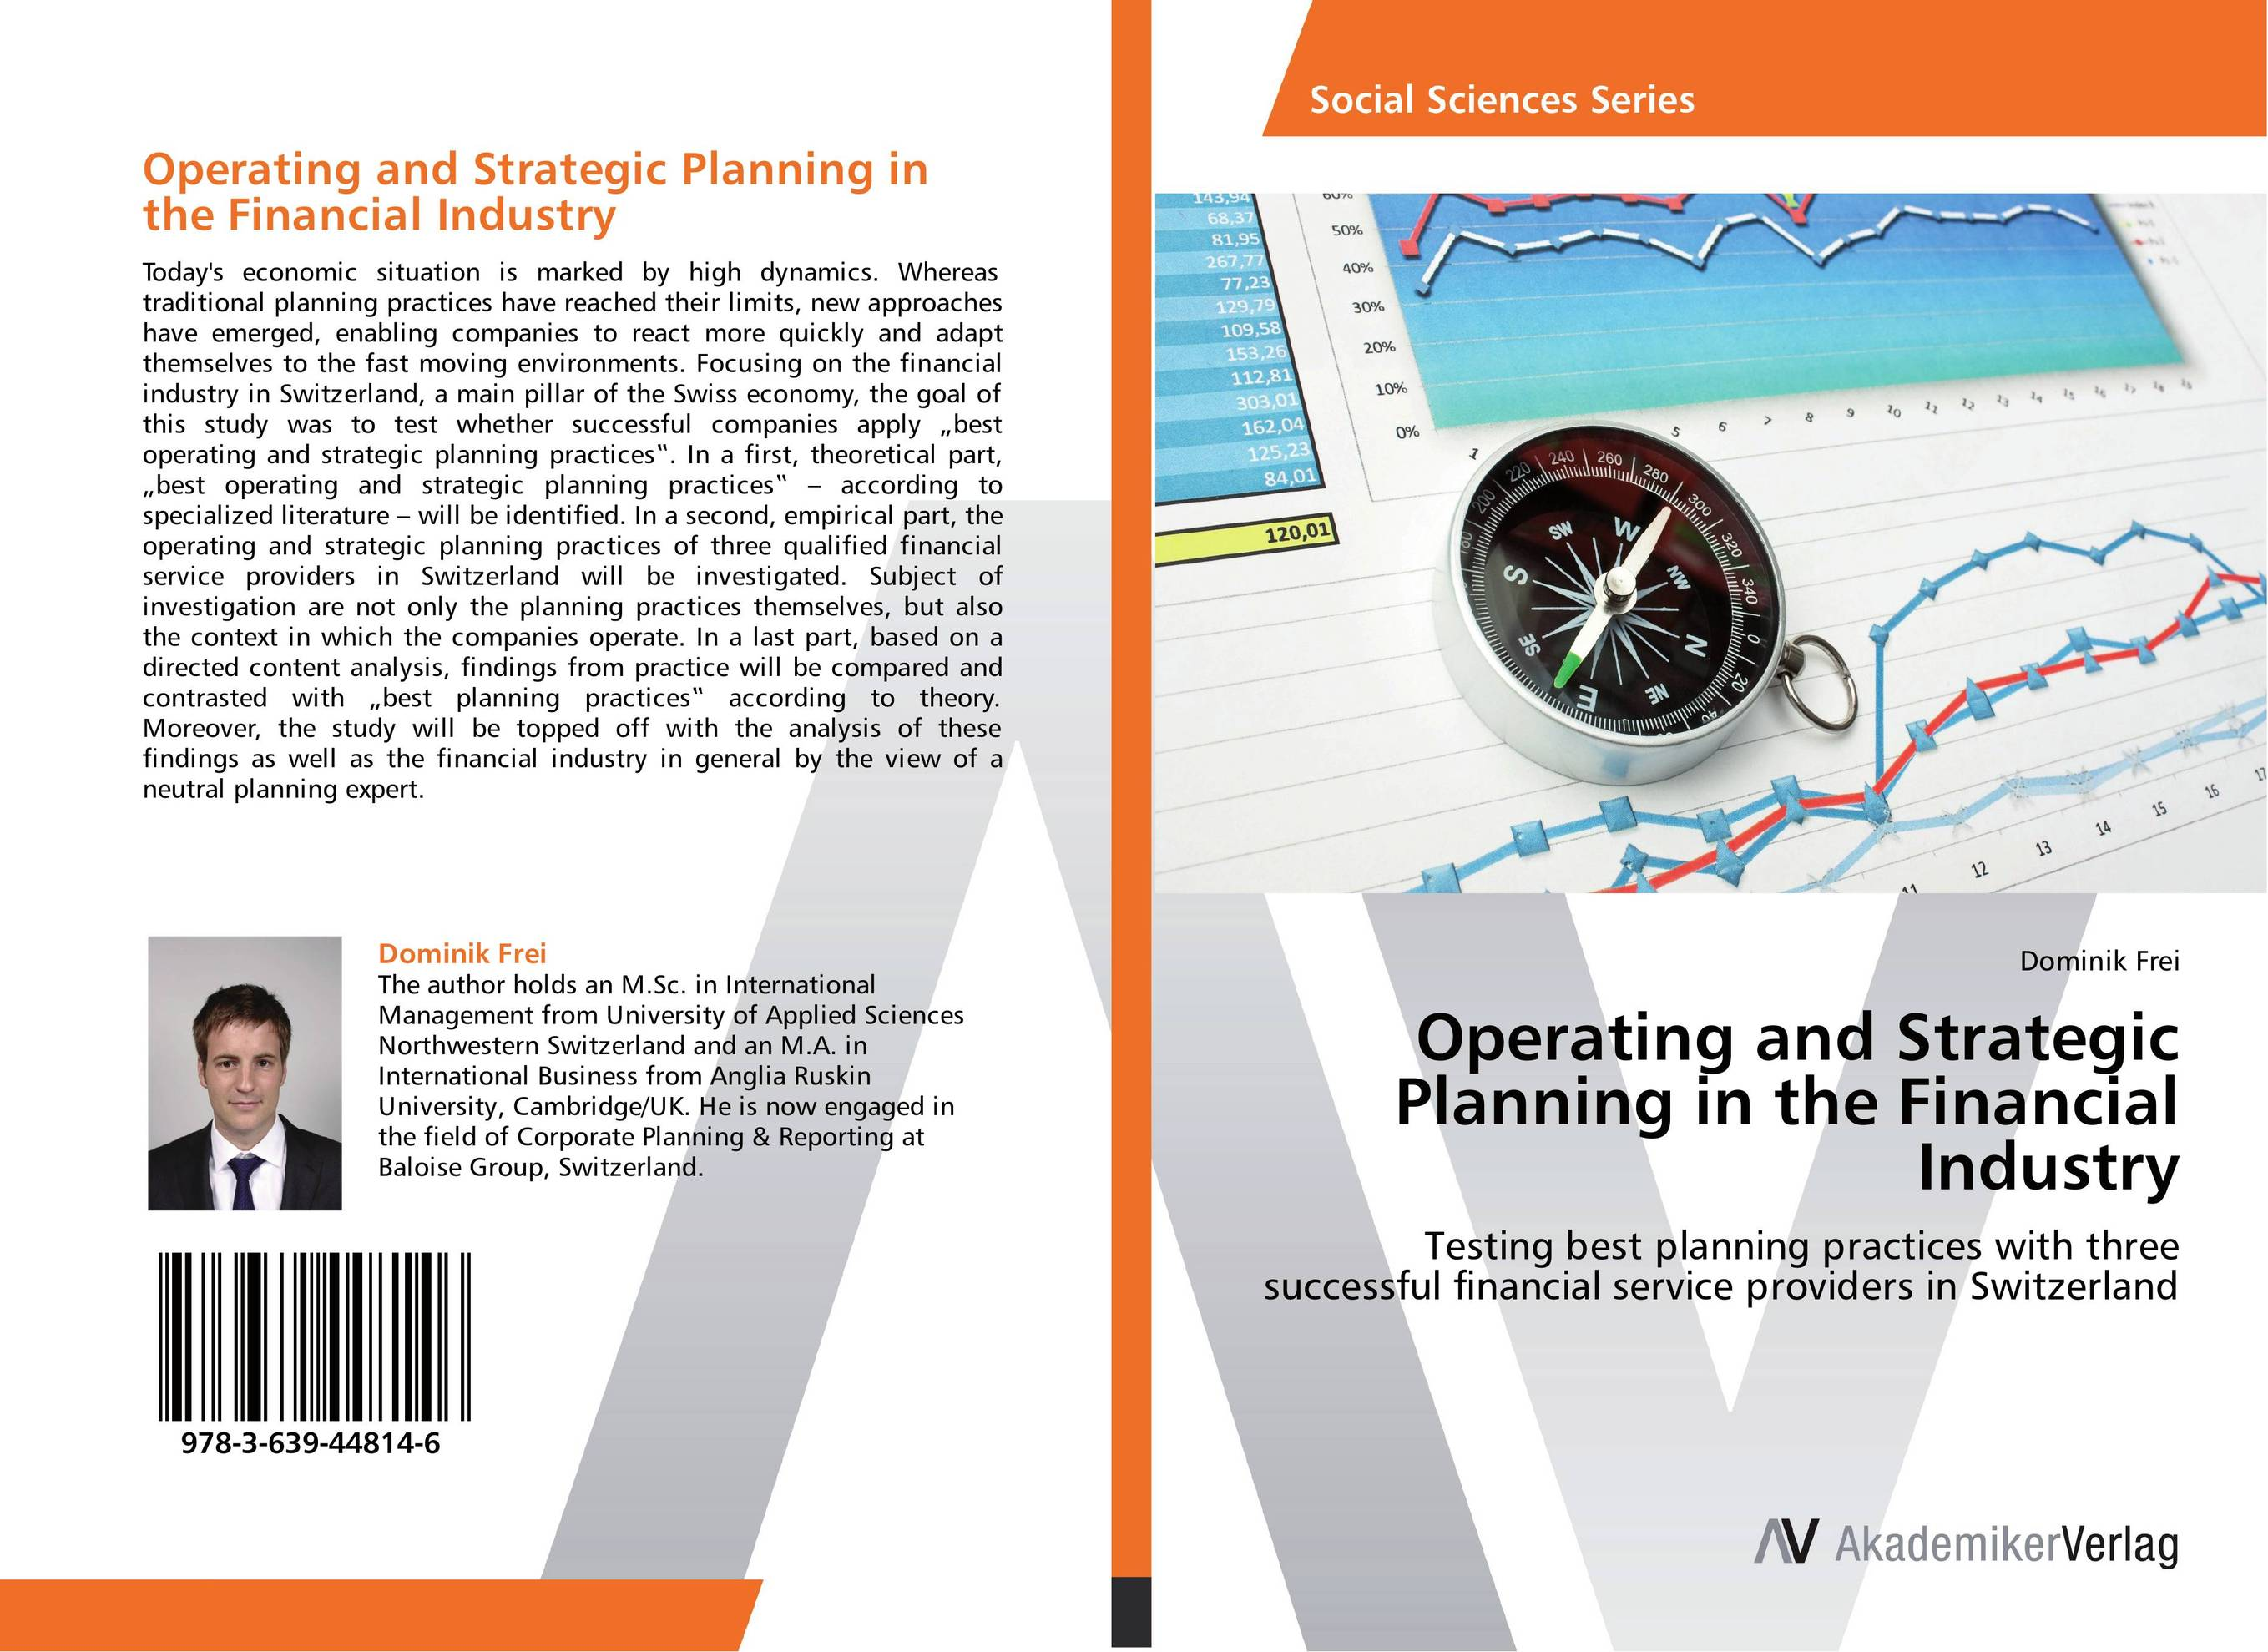 Operating and Strategic Planning in the Financial Industry family planning practices in two semi